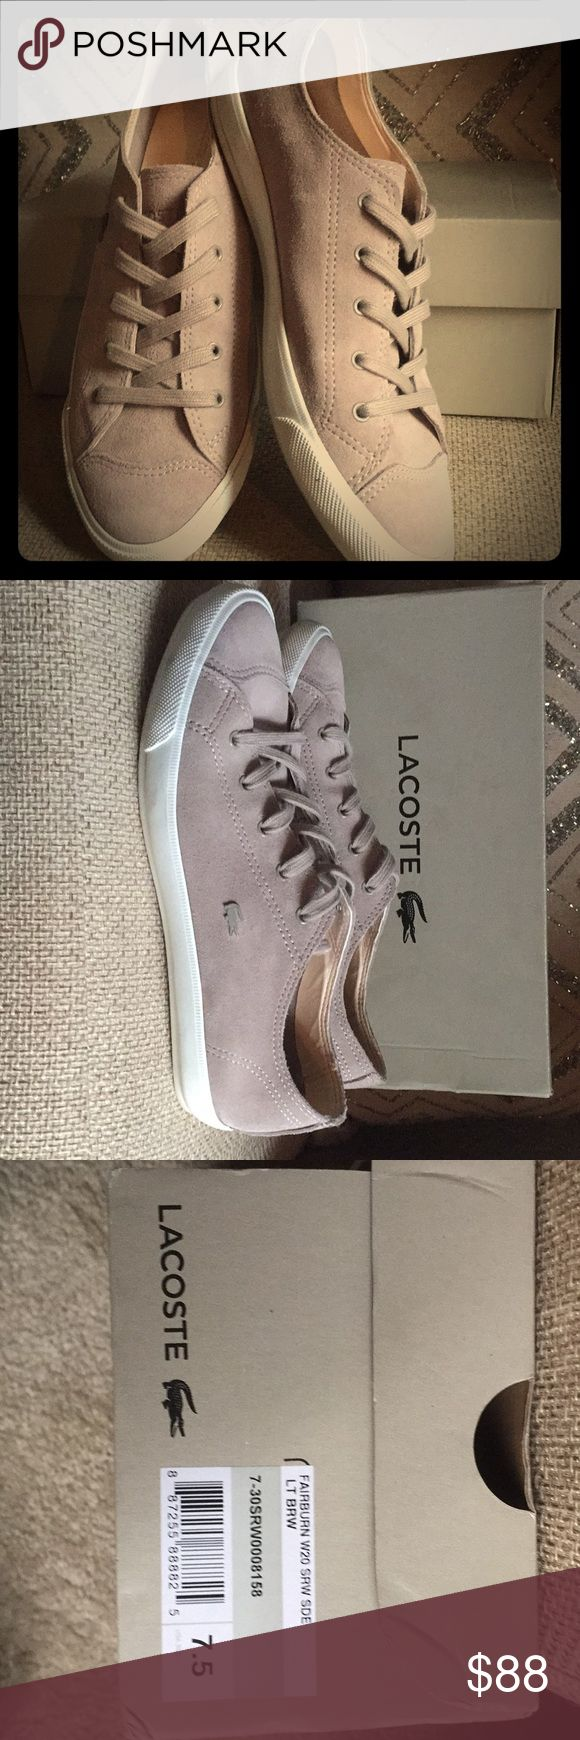 Lacoste sneakers 7.5 Fairburn W20 Lt Brown Suede (more of a Taupe color)  Lightly used! (Worn only once) Lacoste Shoes Sneakers